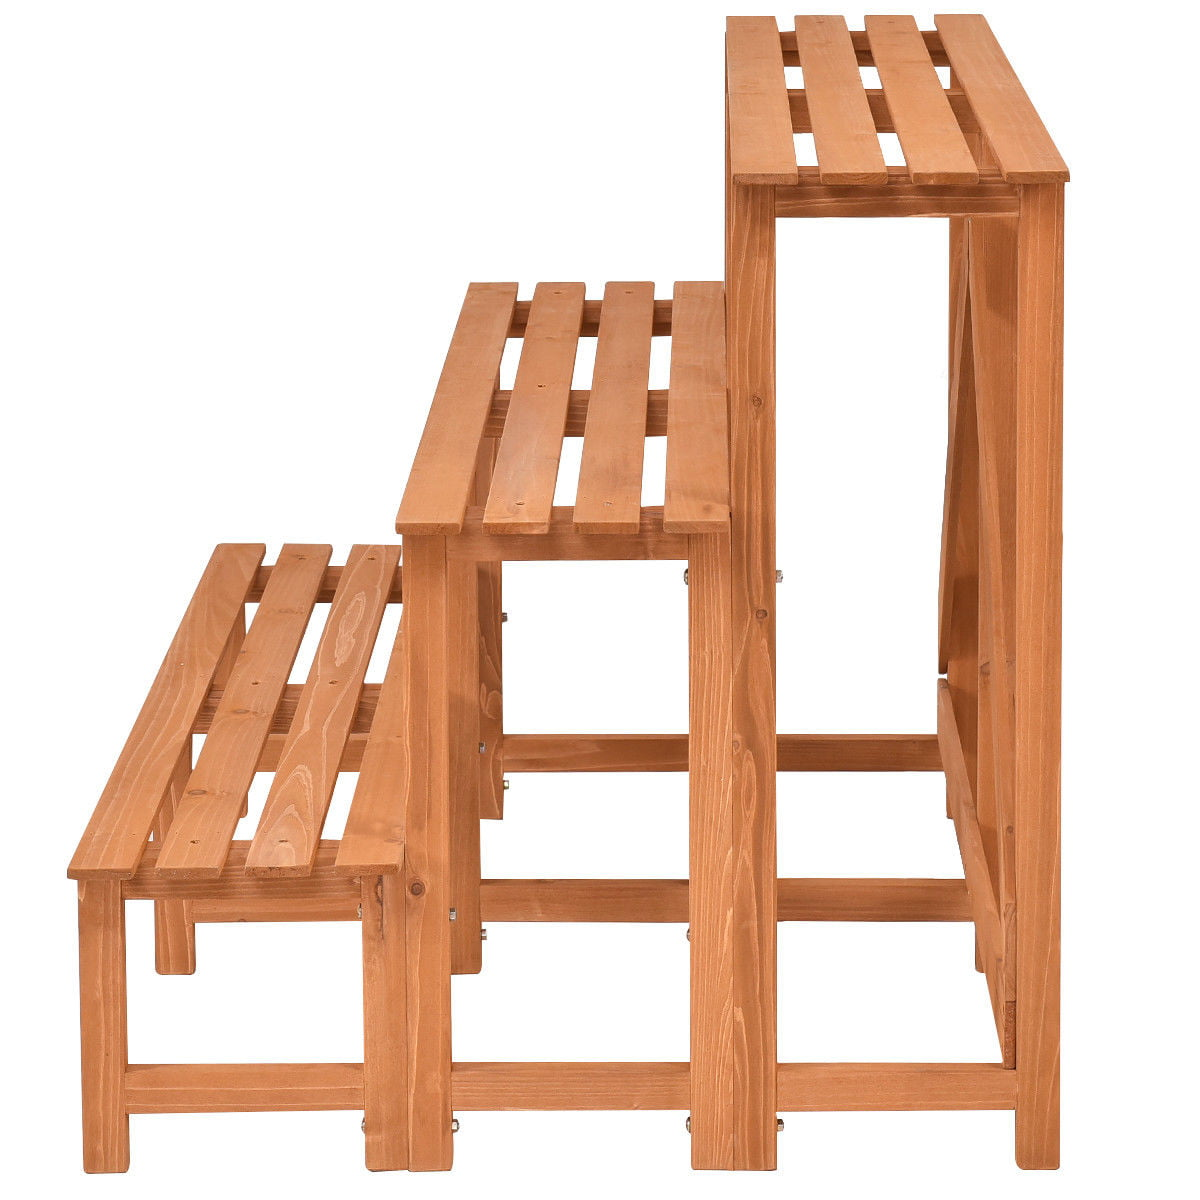 Costway 3 Tier Wide Wood Plant Stand Flower Pot Holder Display Rack Shelves Step Ladder